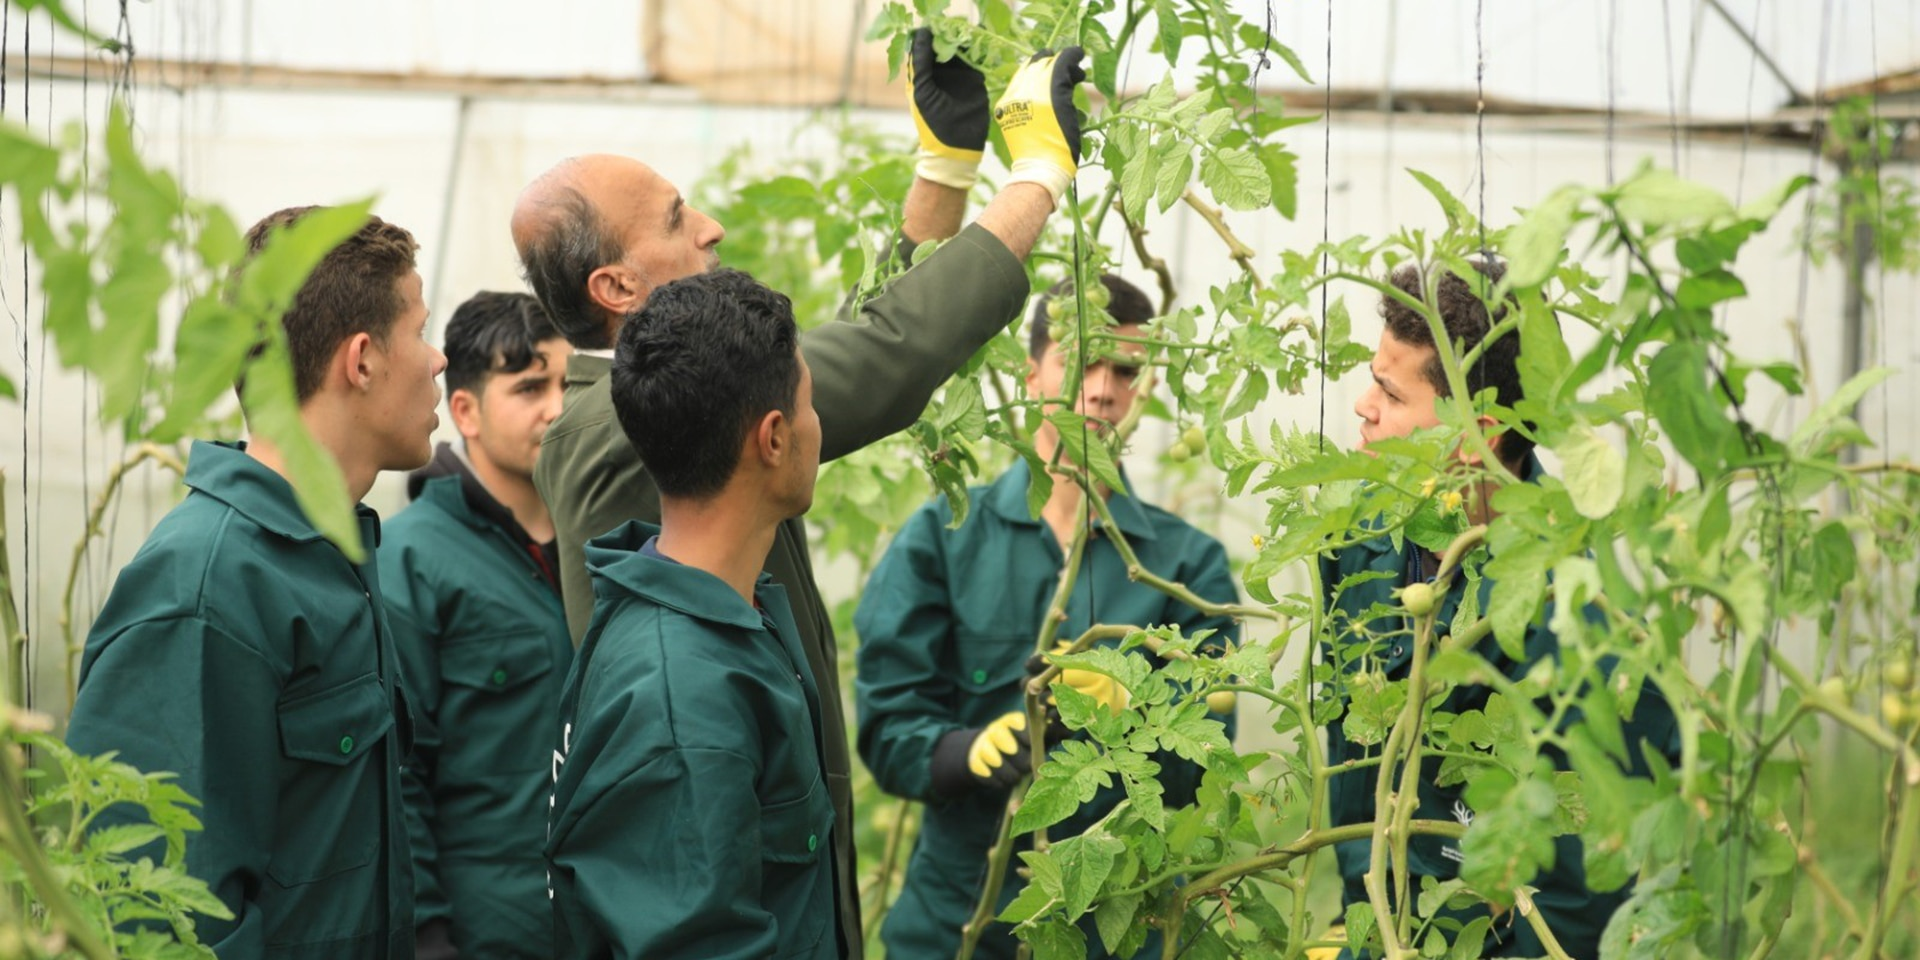 At an agricultural school, a teacher explains a plant to young men.